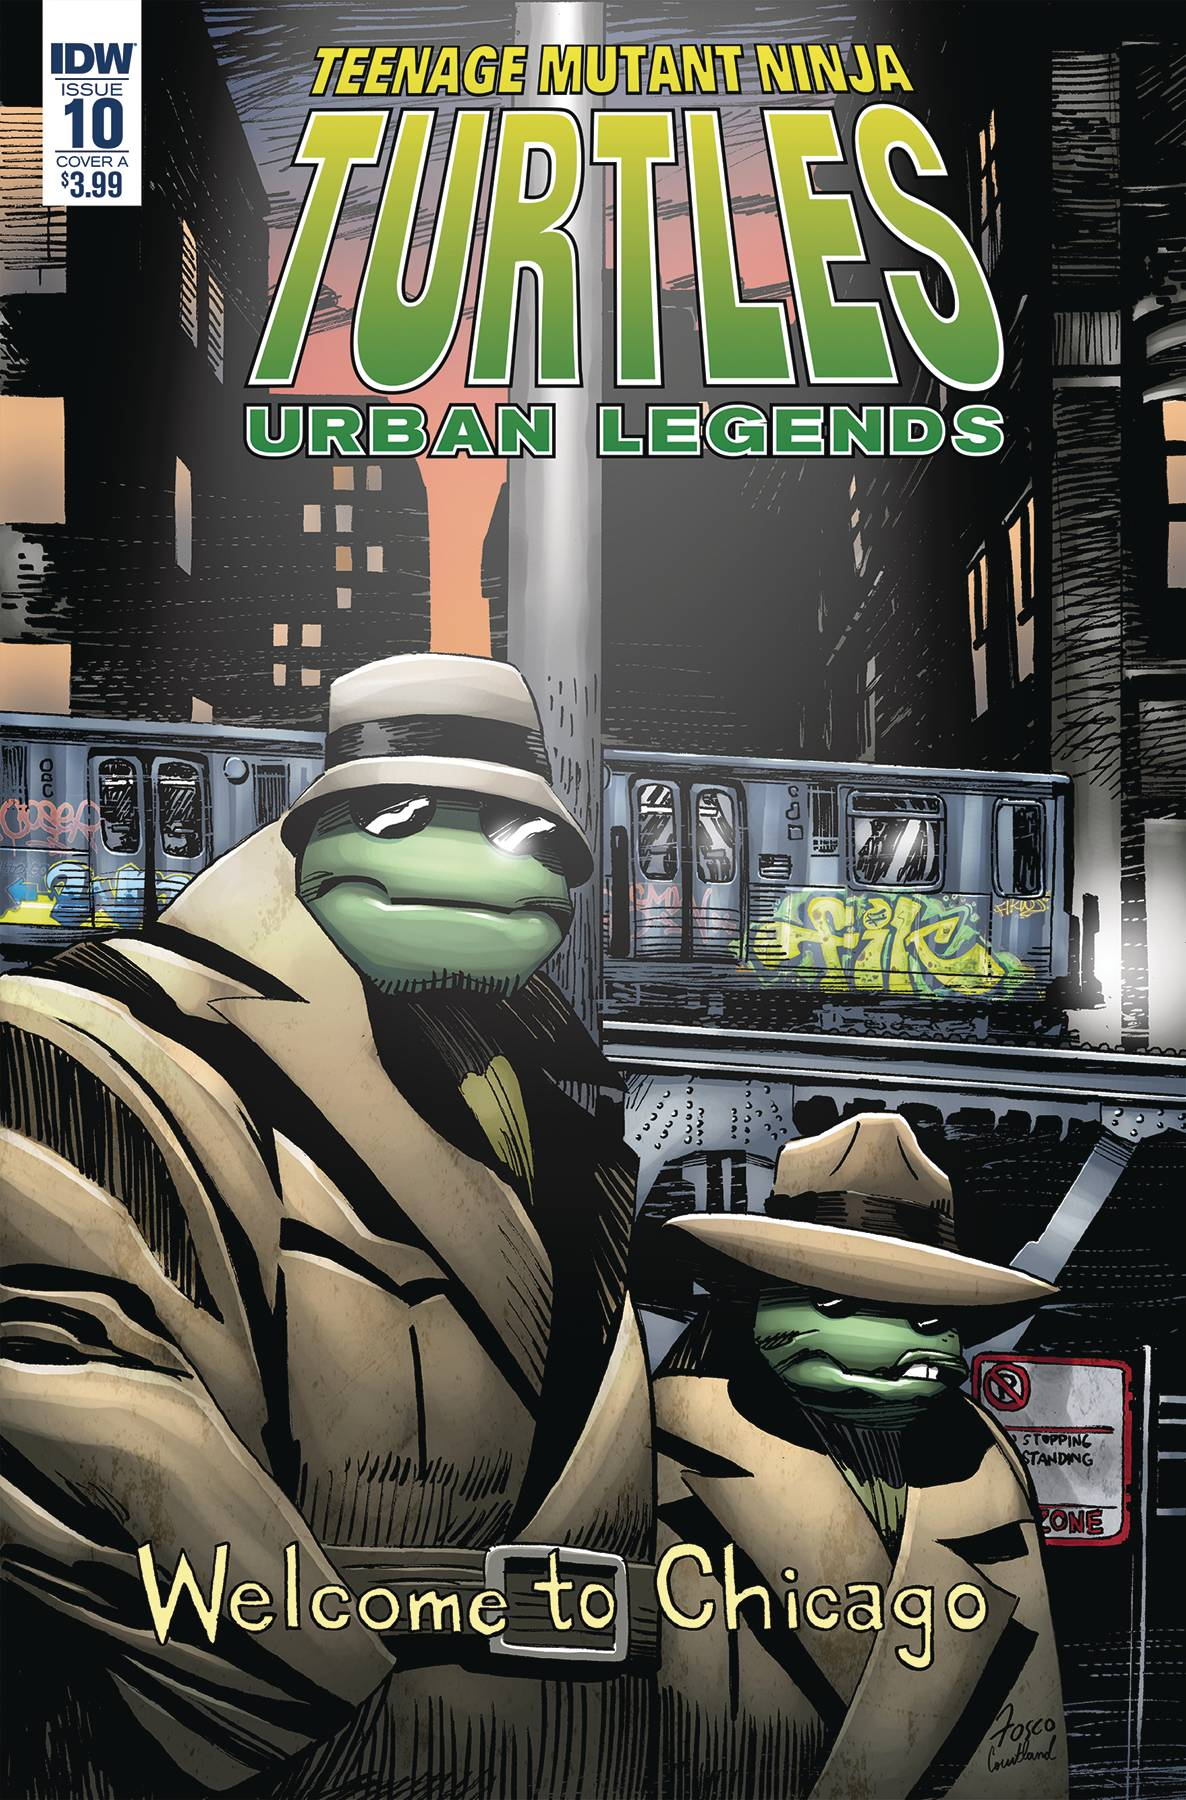 TMNT Urban Legends #10